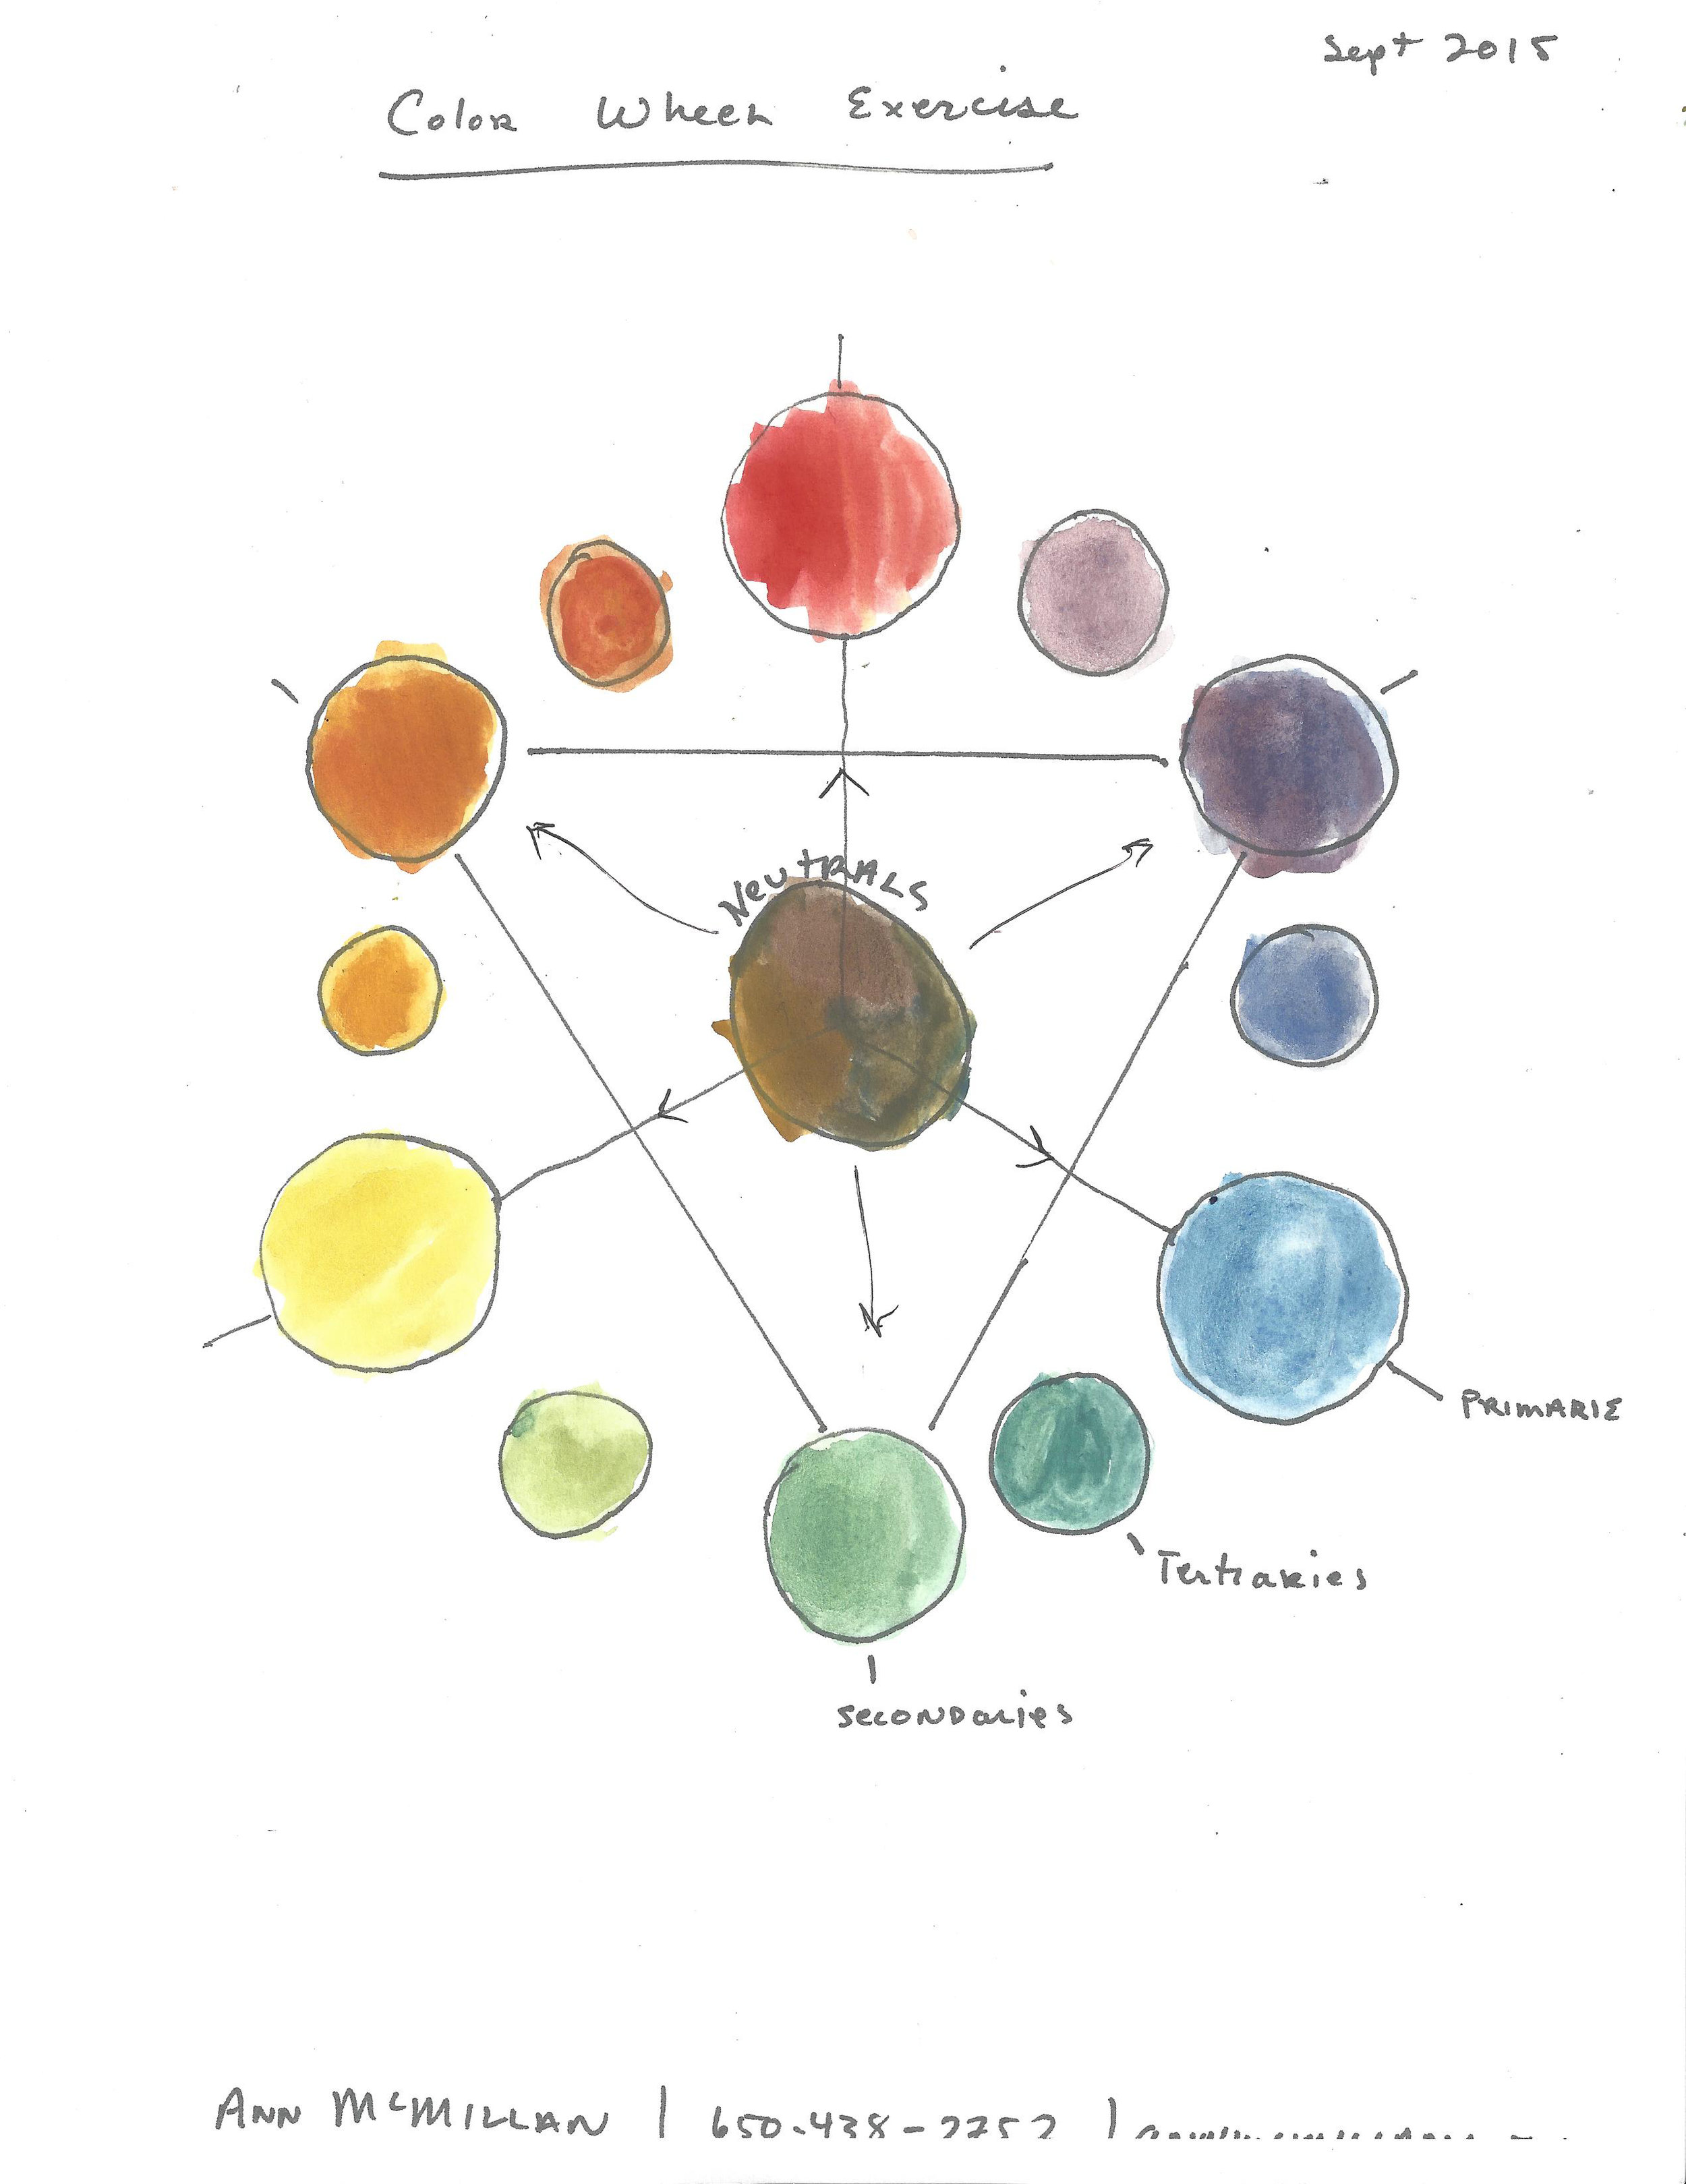 Color Wheel Exercise completed in Watercolor